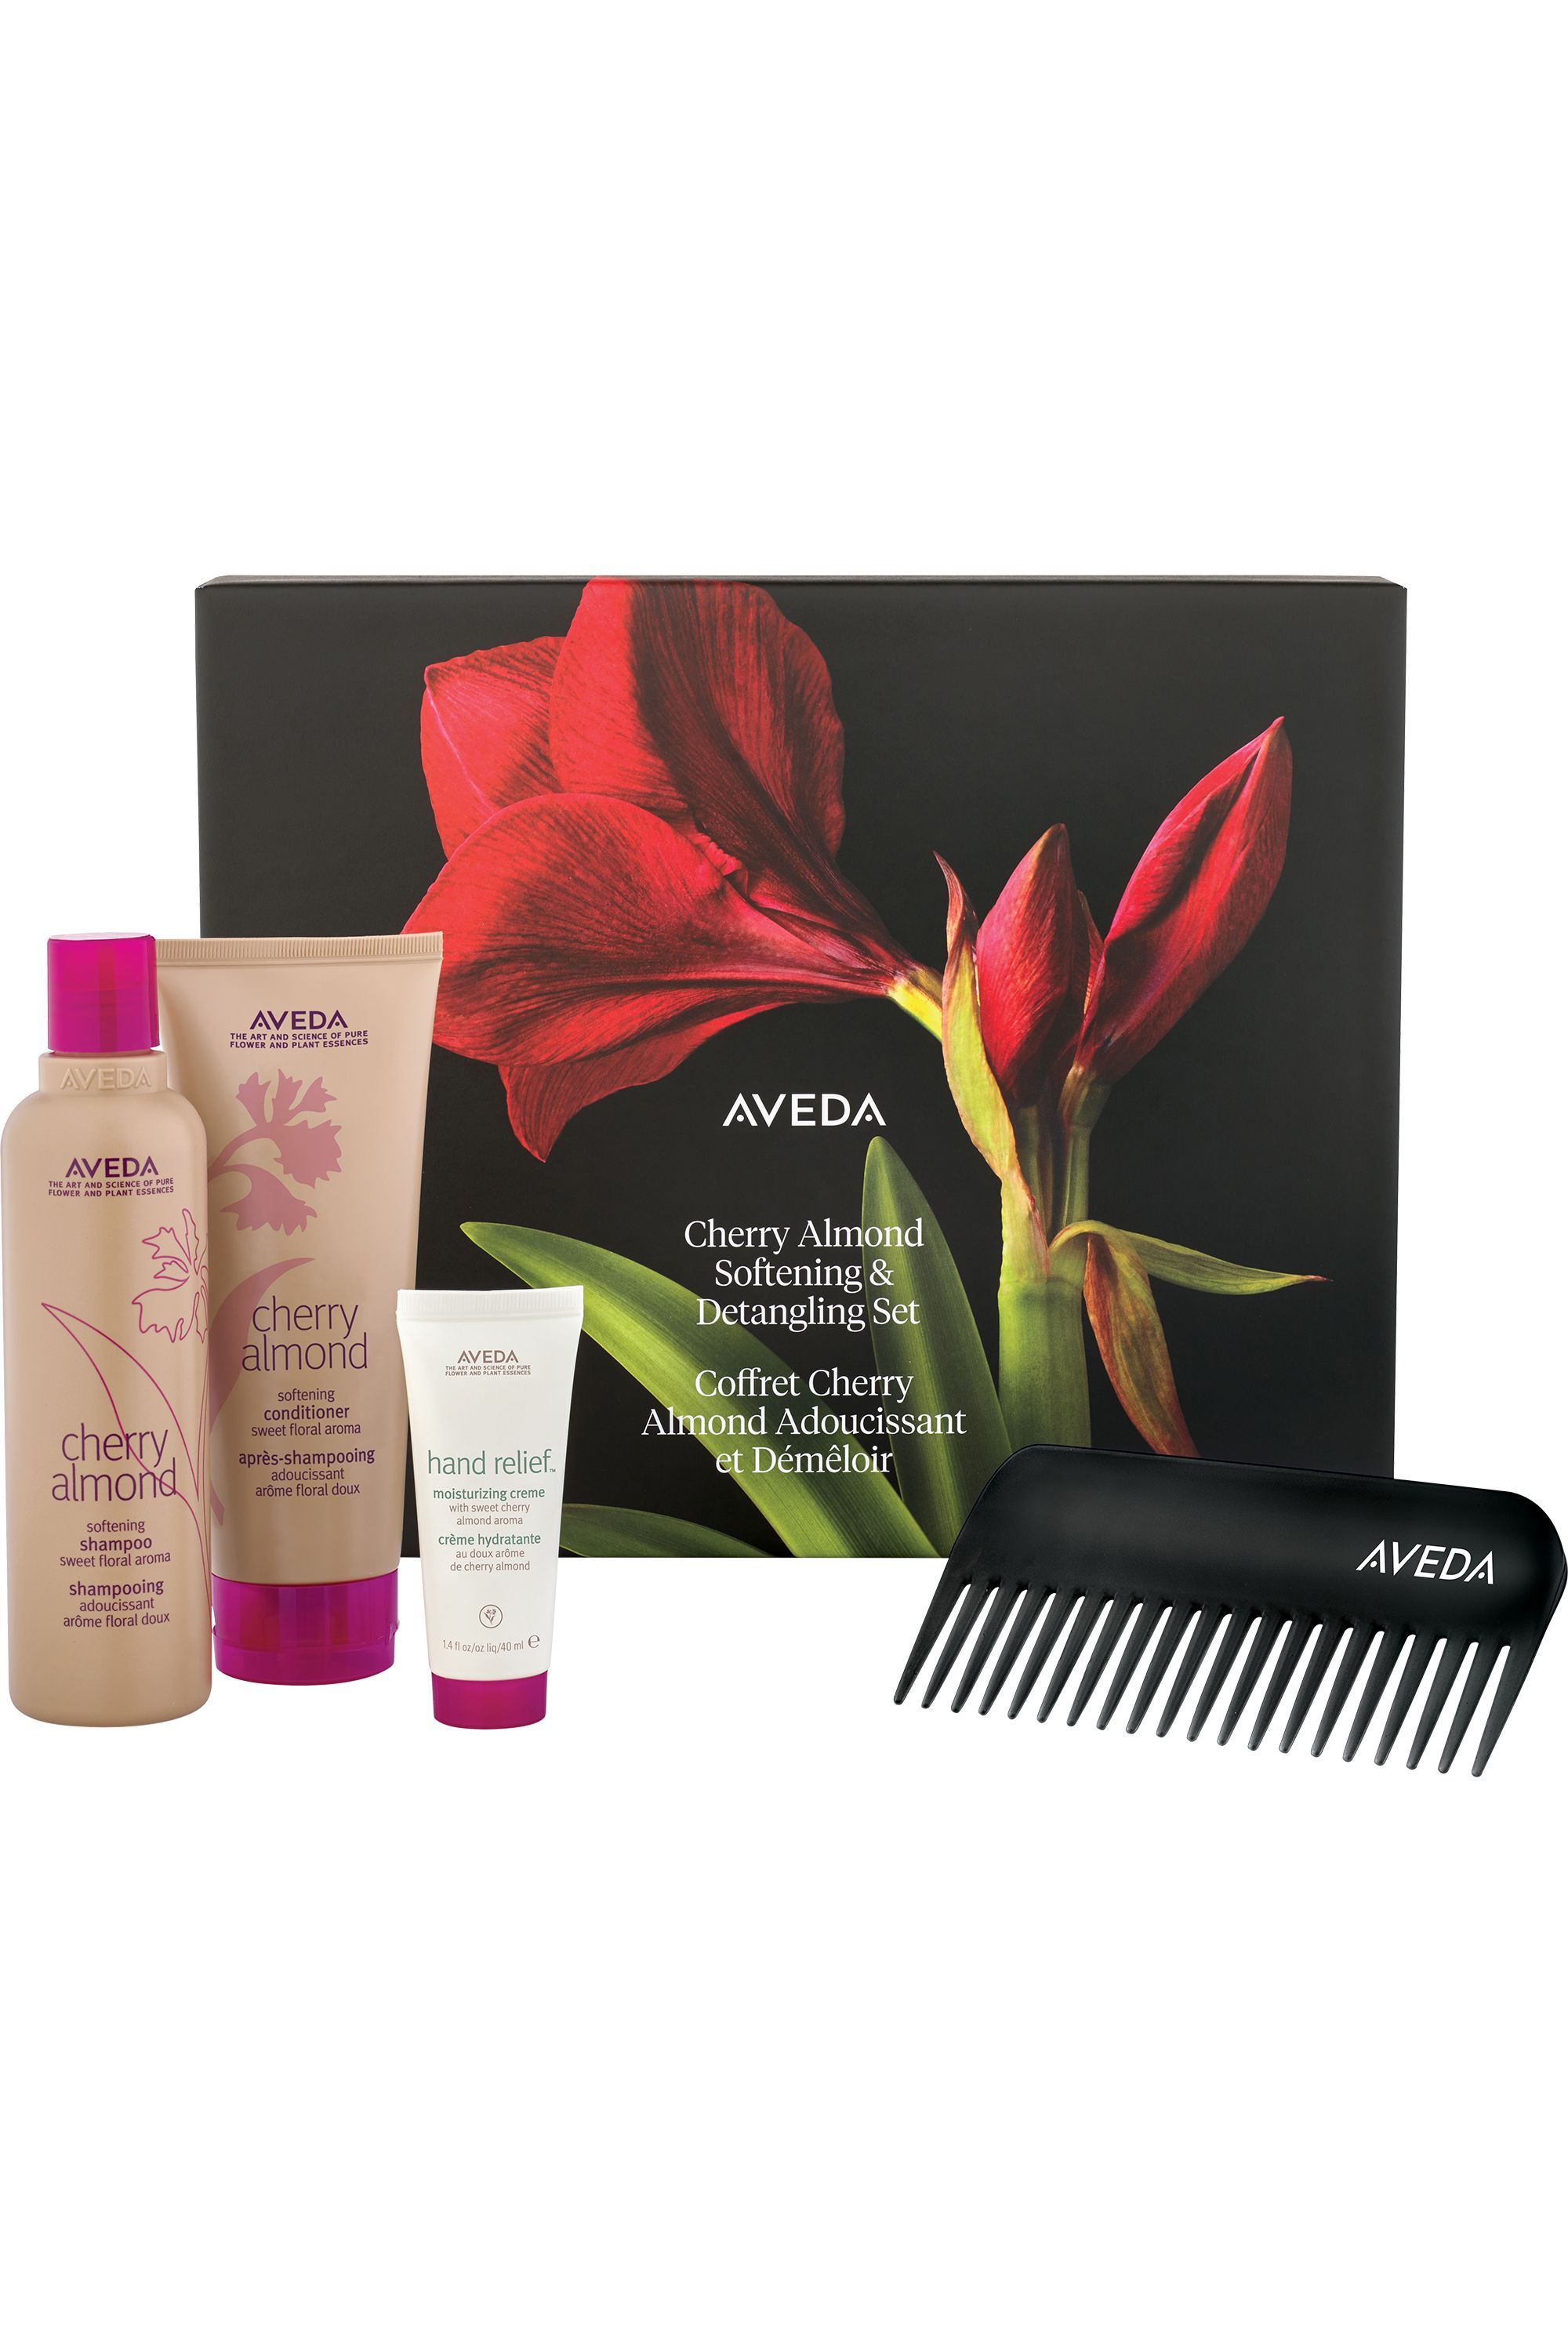 Blissim : Aveda - Coffret Cherry Almond - Coffret Cherry Almond